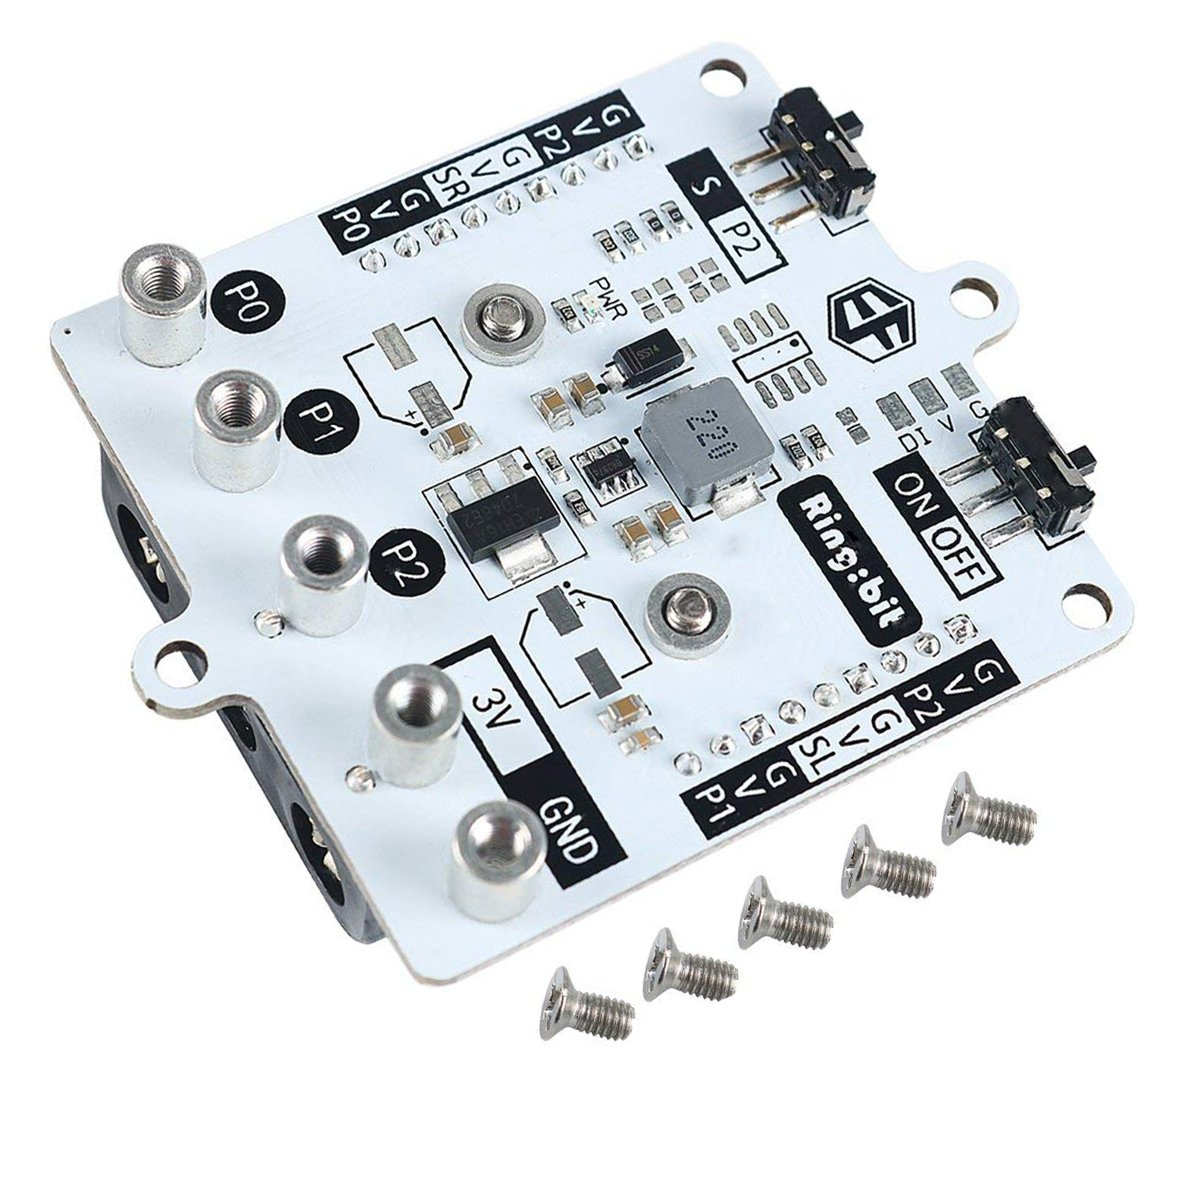 MakerFocus BBC Microbit Extension Board Ring:bit Support 3 PIN GVS Connector Connect Three Servos,Driving All Kinds of GVS Modules Support Bluetooth 4.0 Device for BBC Microbit Board